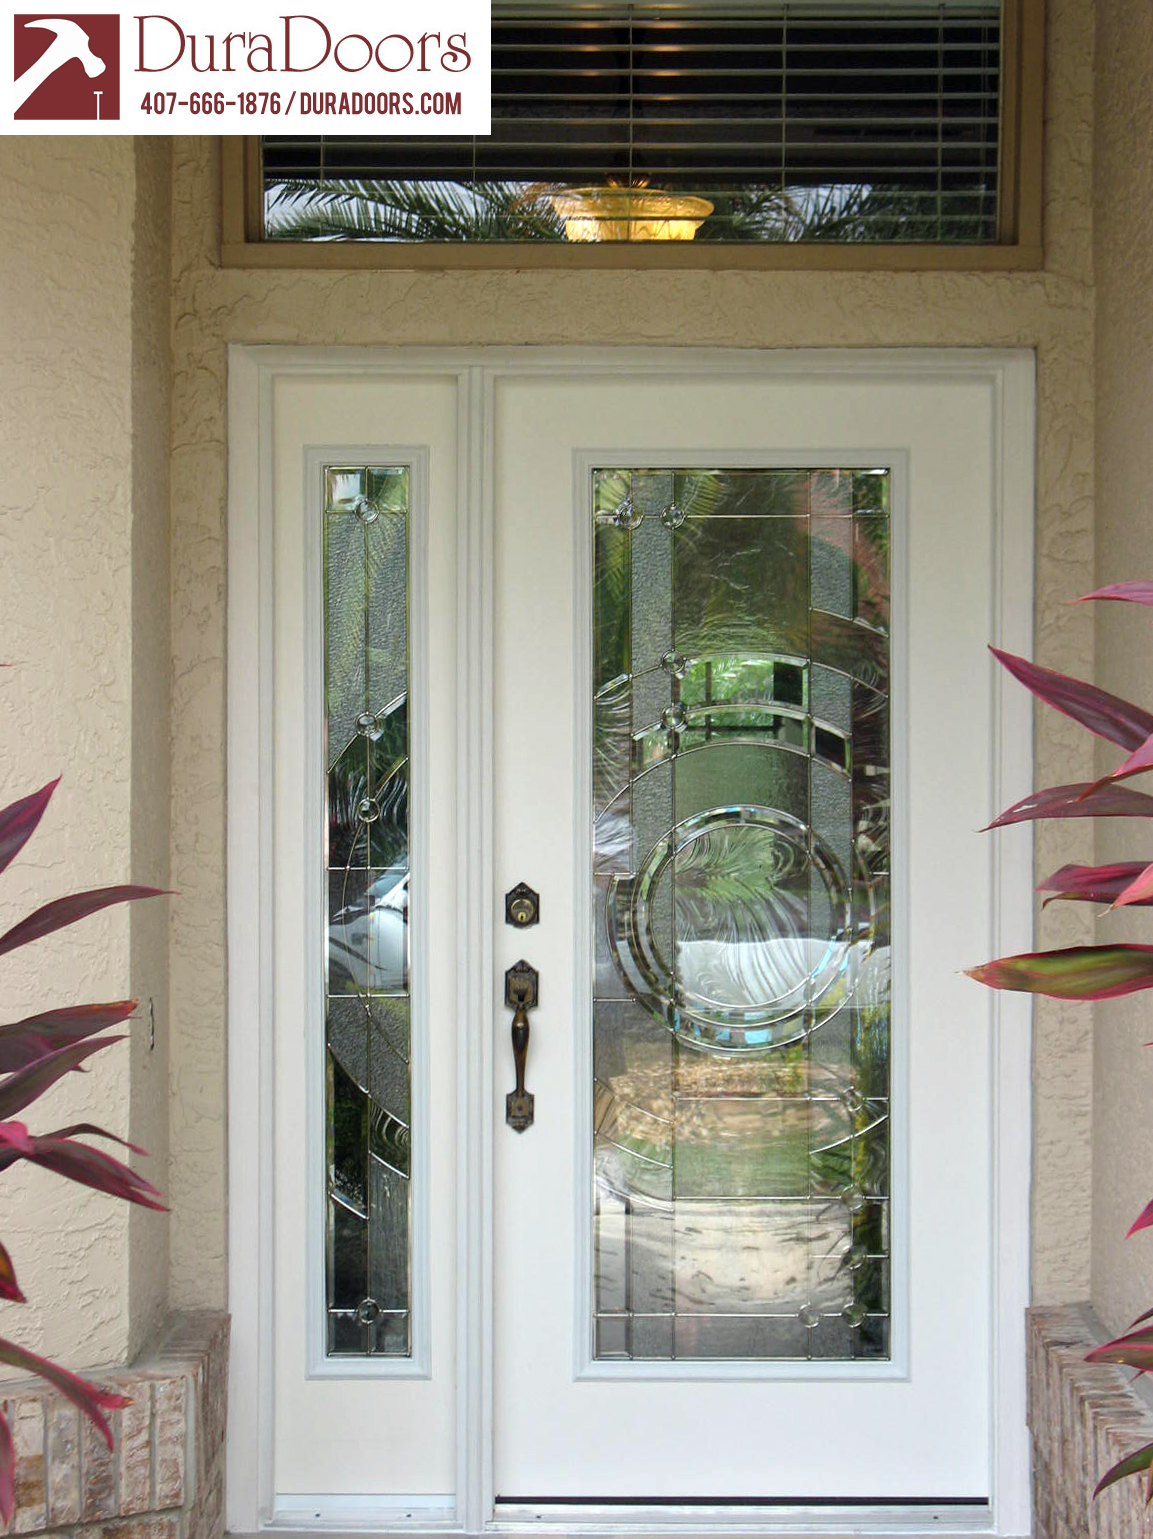 1539 #664537 Plastpro Entry Door And Sidelight With Entropy Glass By ODL  picture/photo Entry Doors With Sidelights 41991153